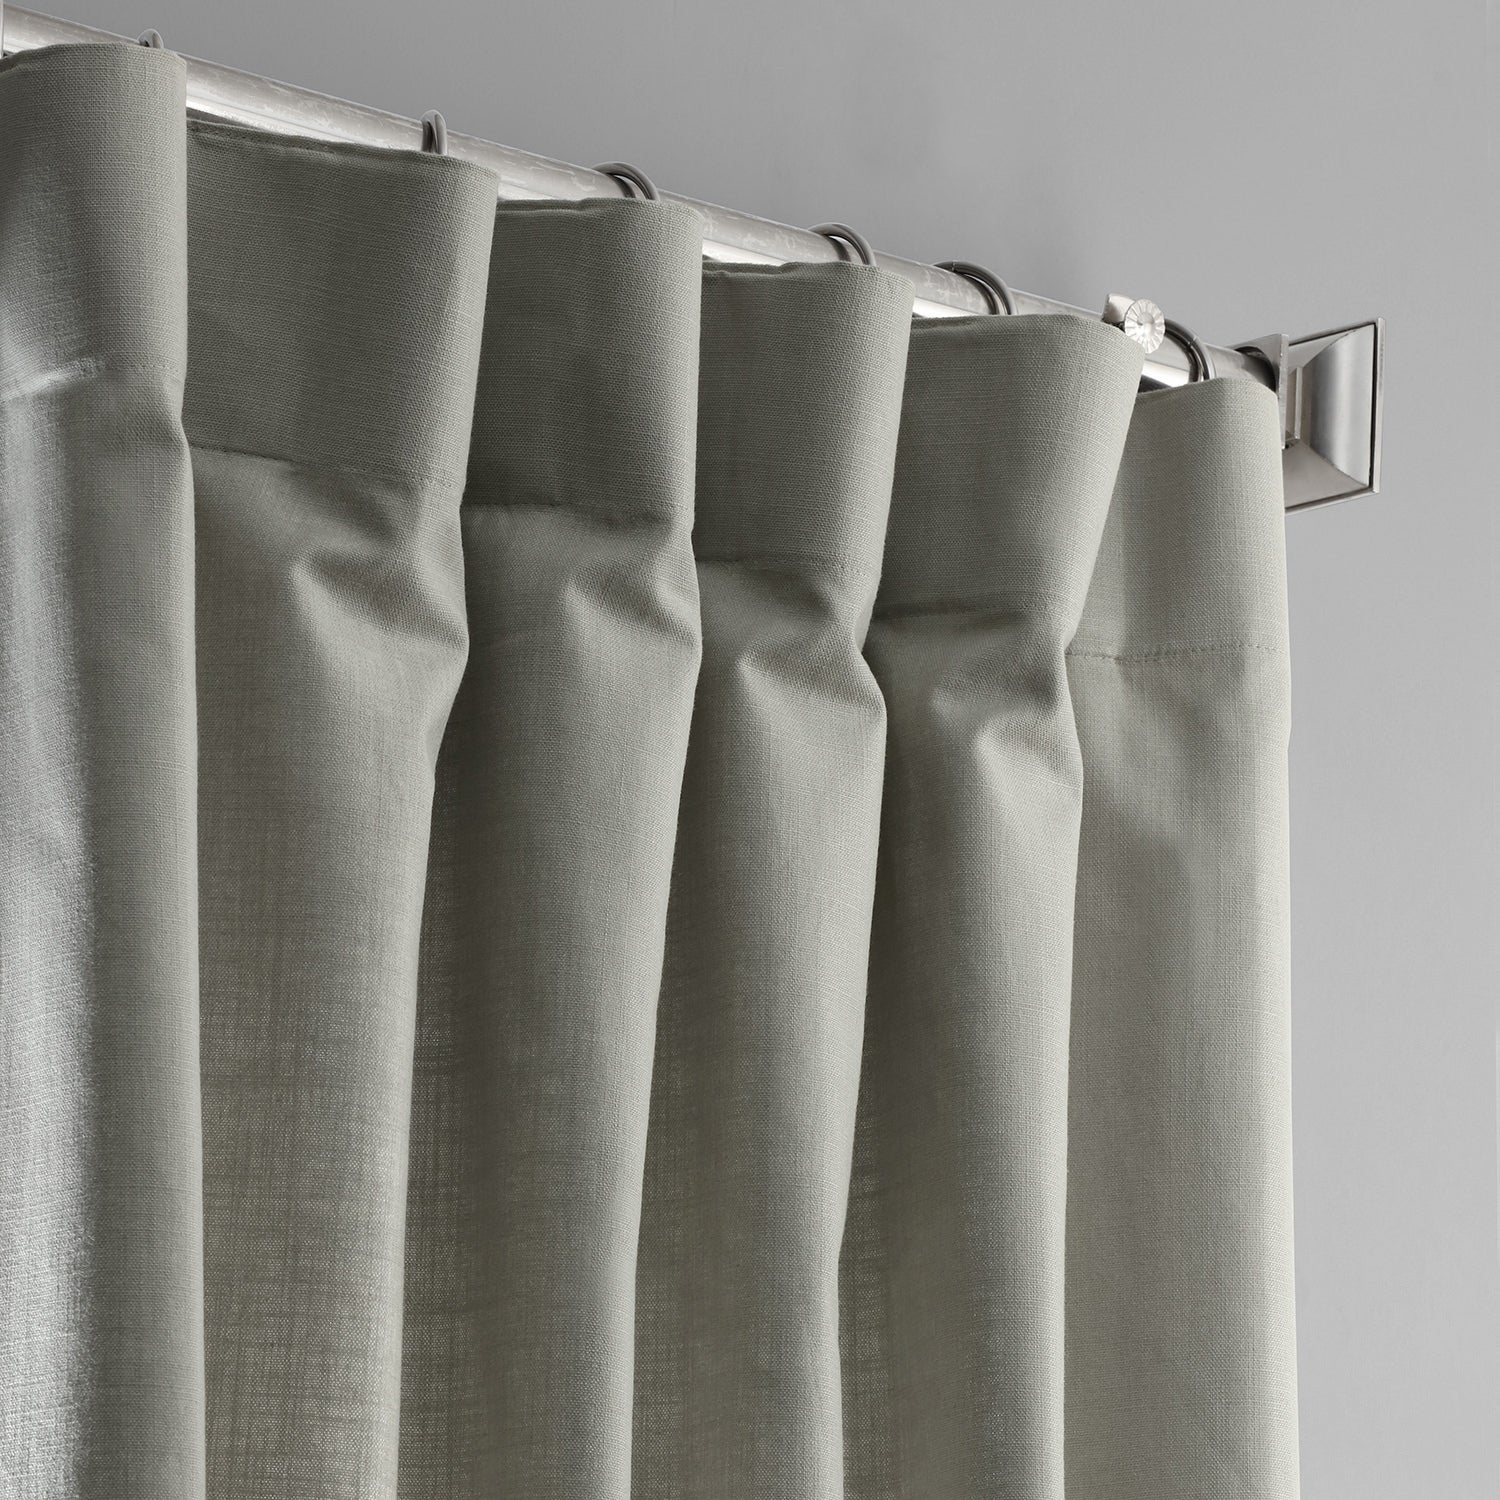 Exclusive Fabrics Solid Country Cotton Linen Weave Curtain Panel Inside Solid Country Cotton Linen Weave Curtain Panels (View 20 of 30)